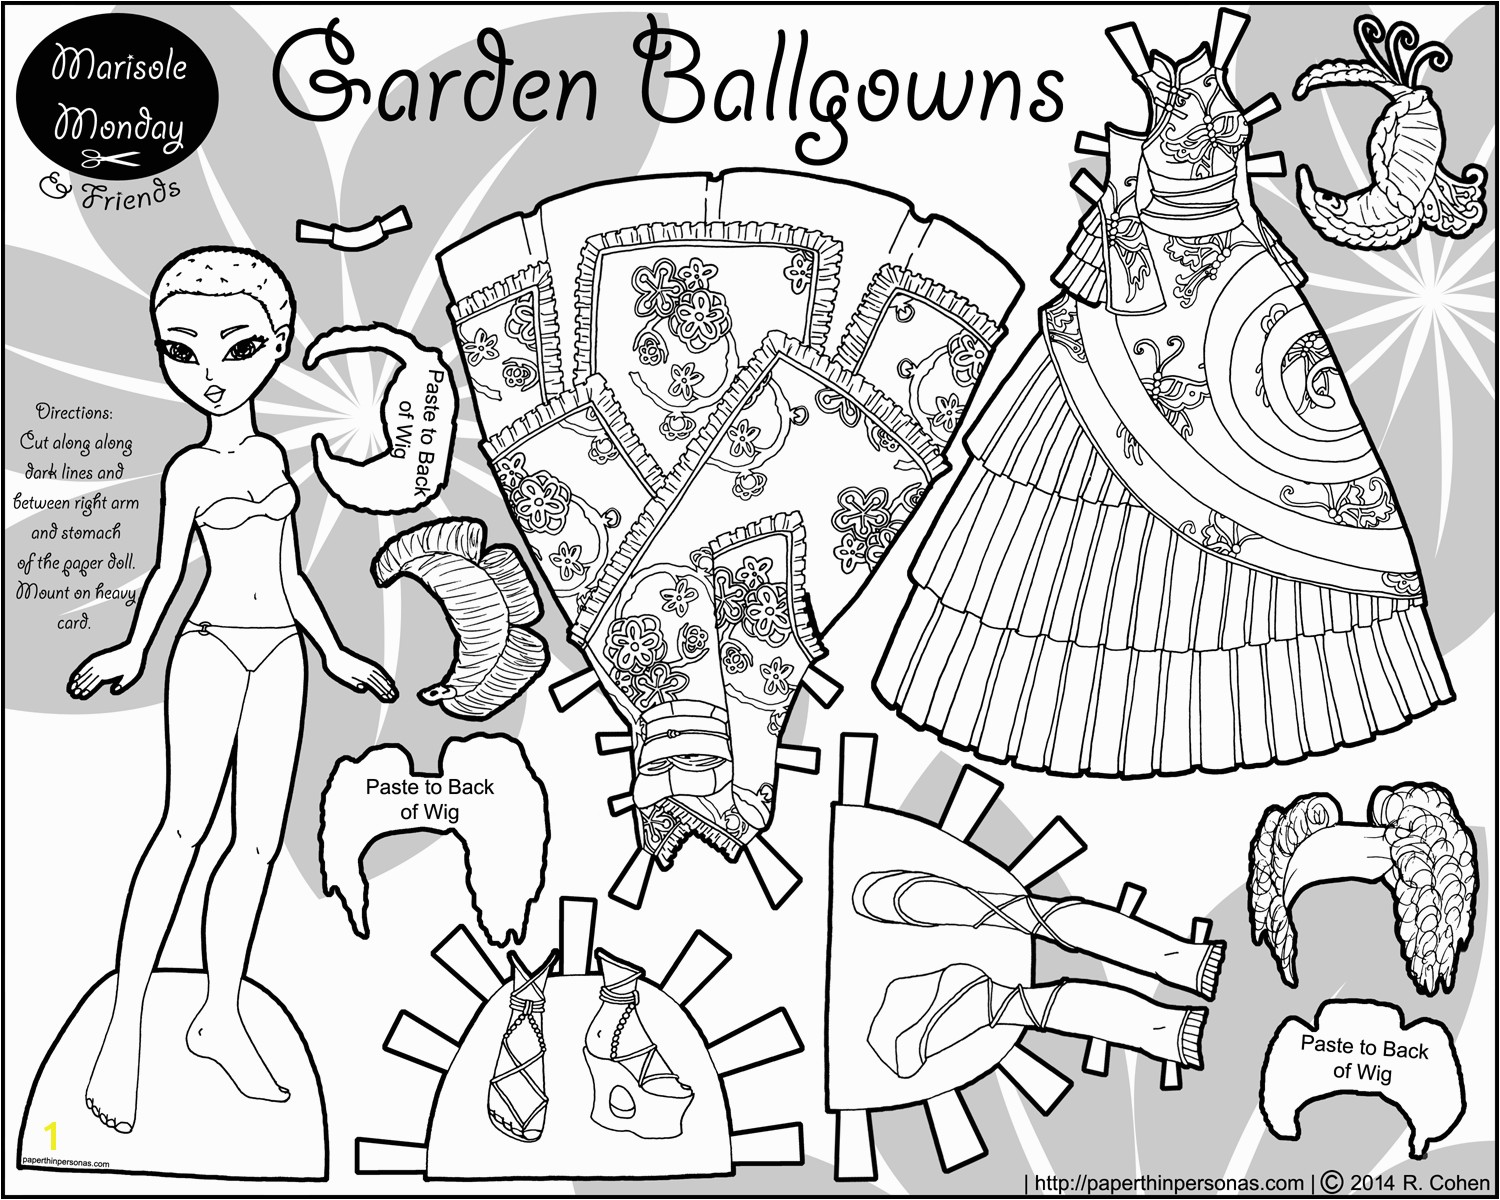 Marisole Monday Paper Doll Coloring Pages Garden Ballgowns A Paper Doll & Wa and Qi Lolita Dresses